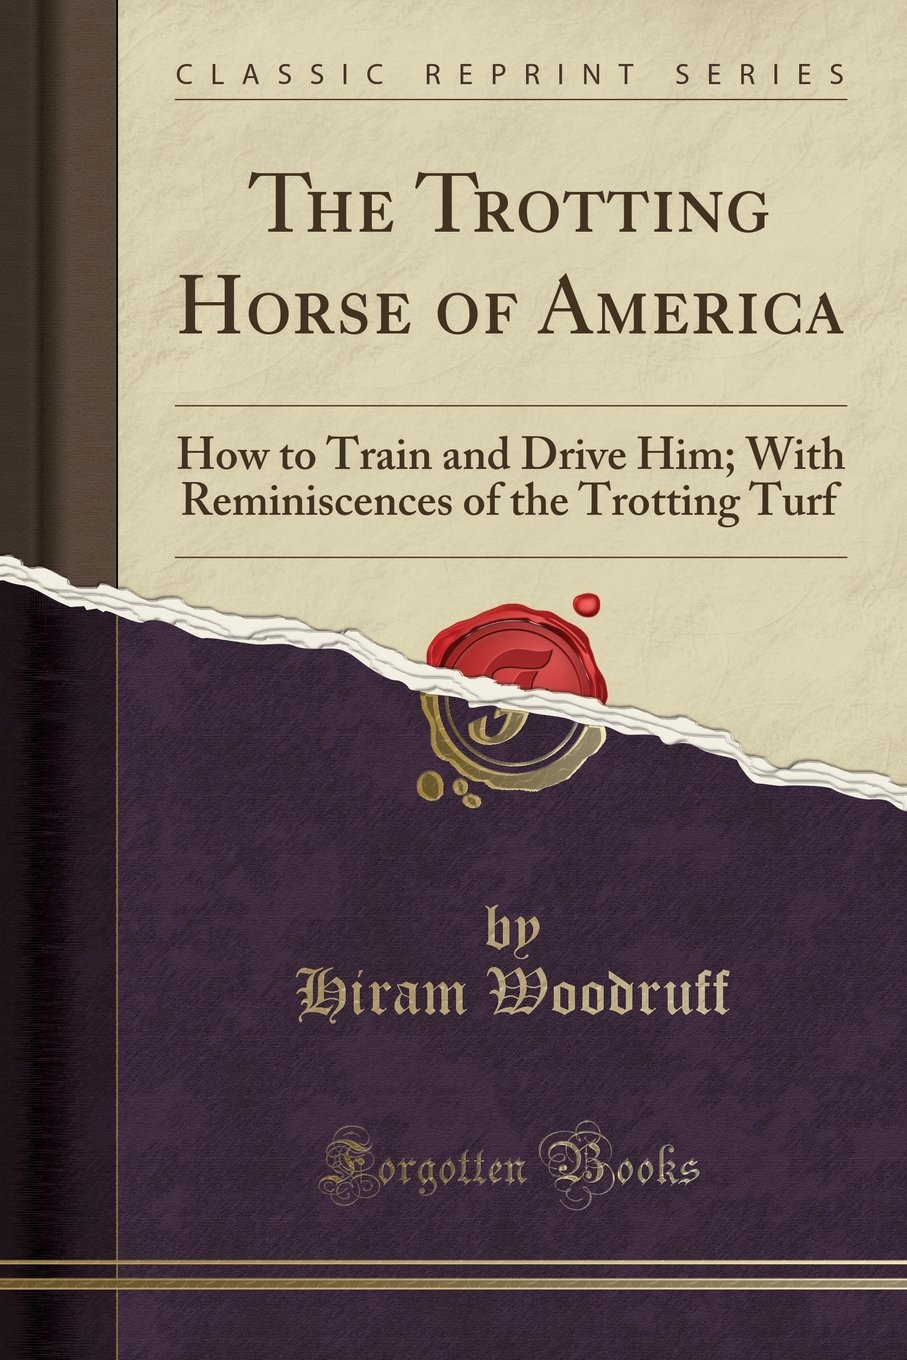 The Trotting Horse of America: How to Train and Drive Him; With Reminiscences of the Trotting Turf (Classic Reprint)